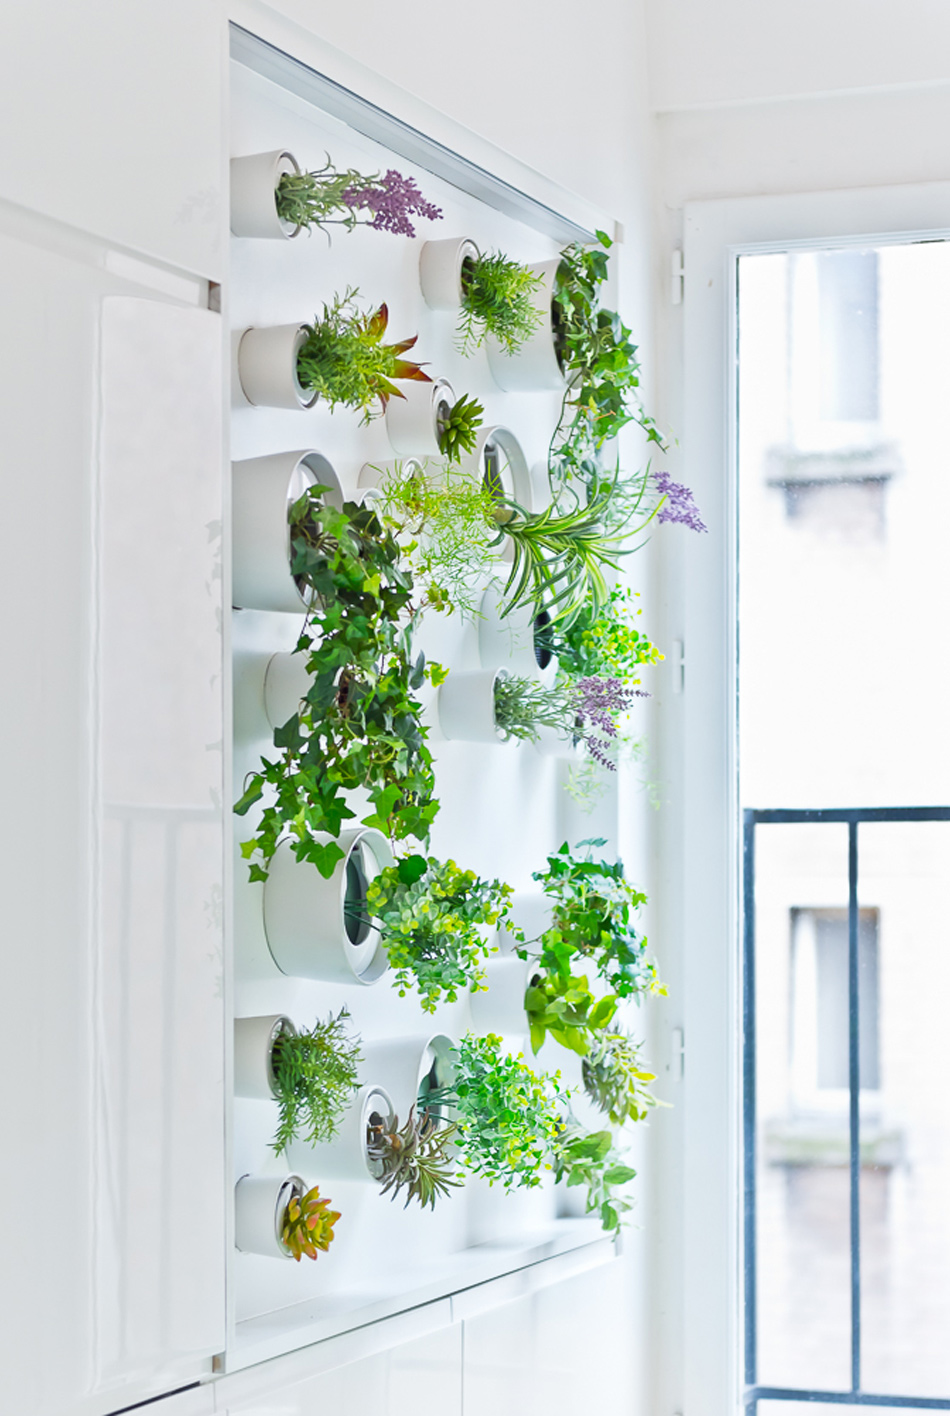 parisian apartment of a young fashion designer 16 Vertical Garden Grows In This Parisian Apartment Of A Young Fashion Designer